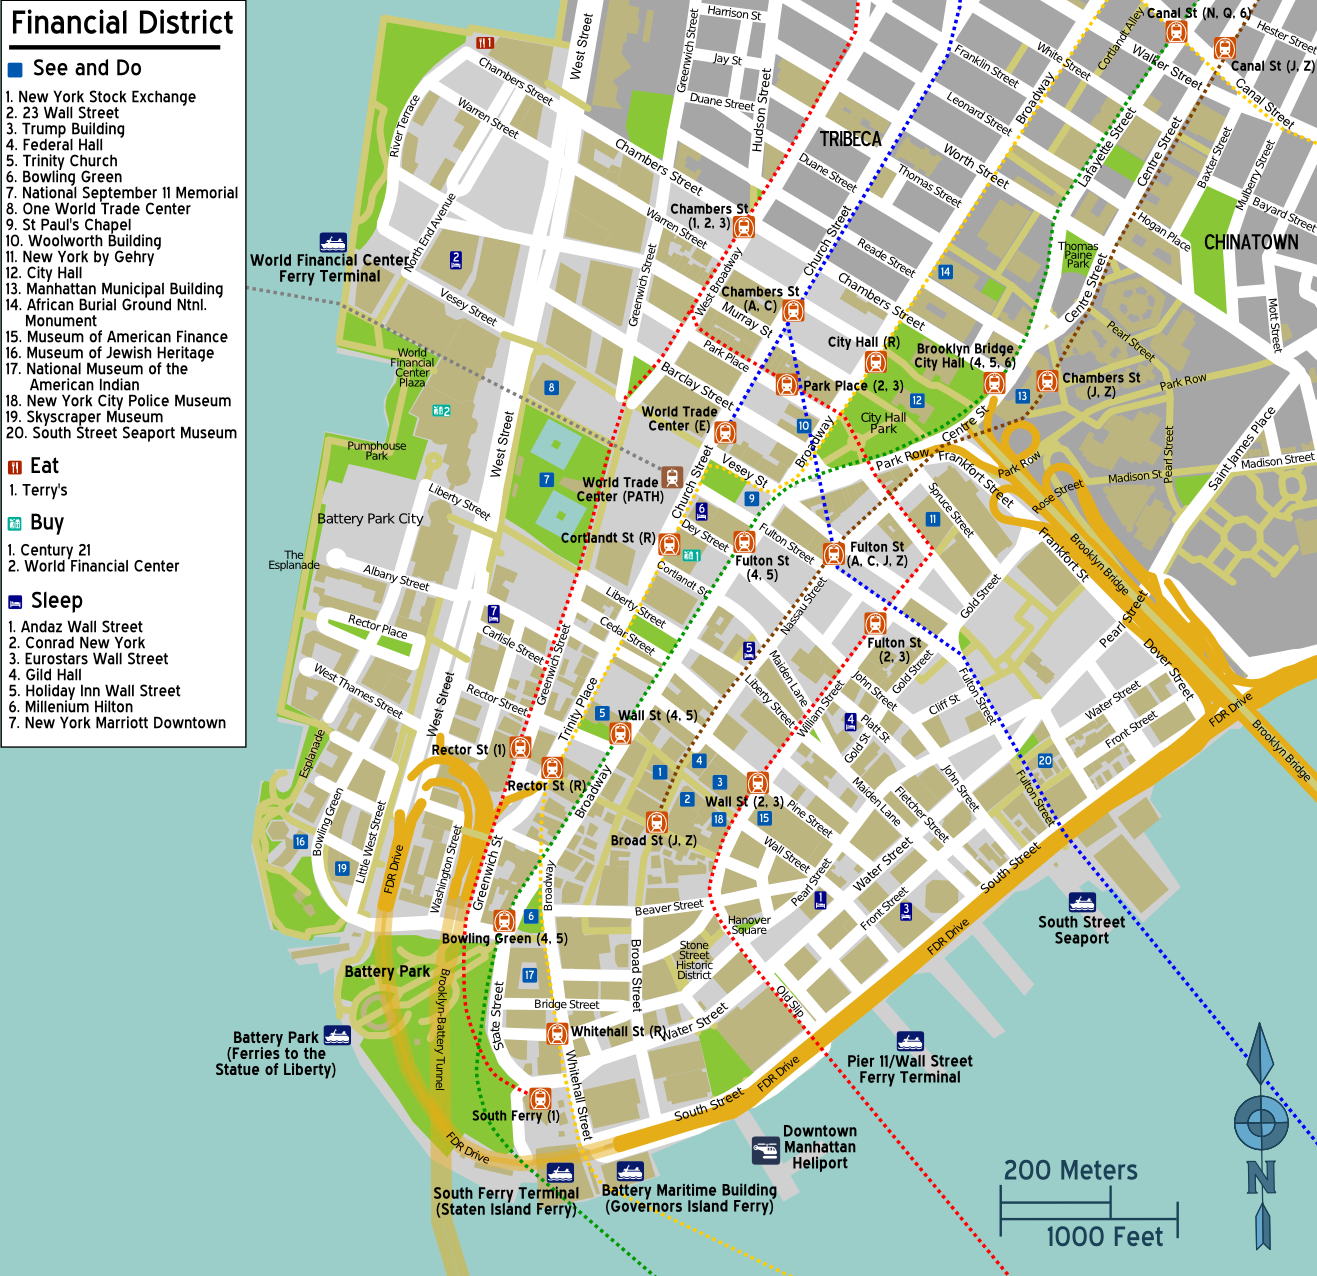 Comprehensive image with regard to printable map of lower manhattan streets